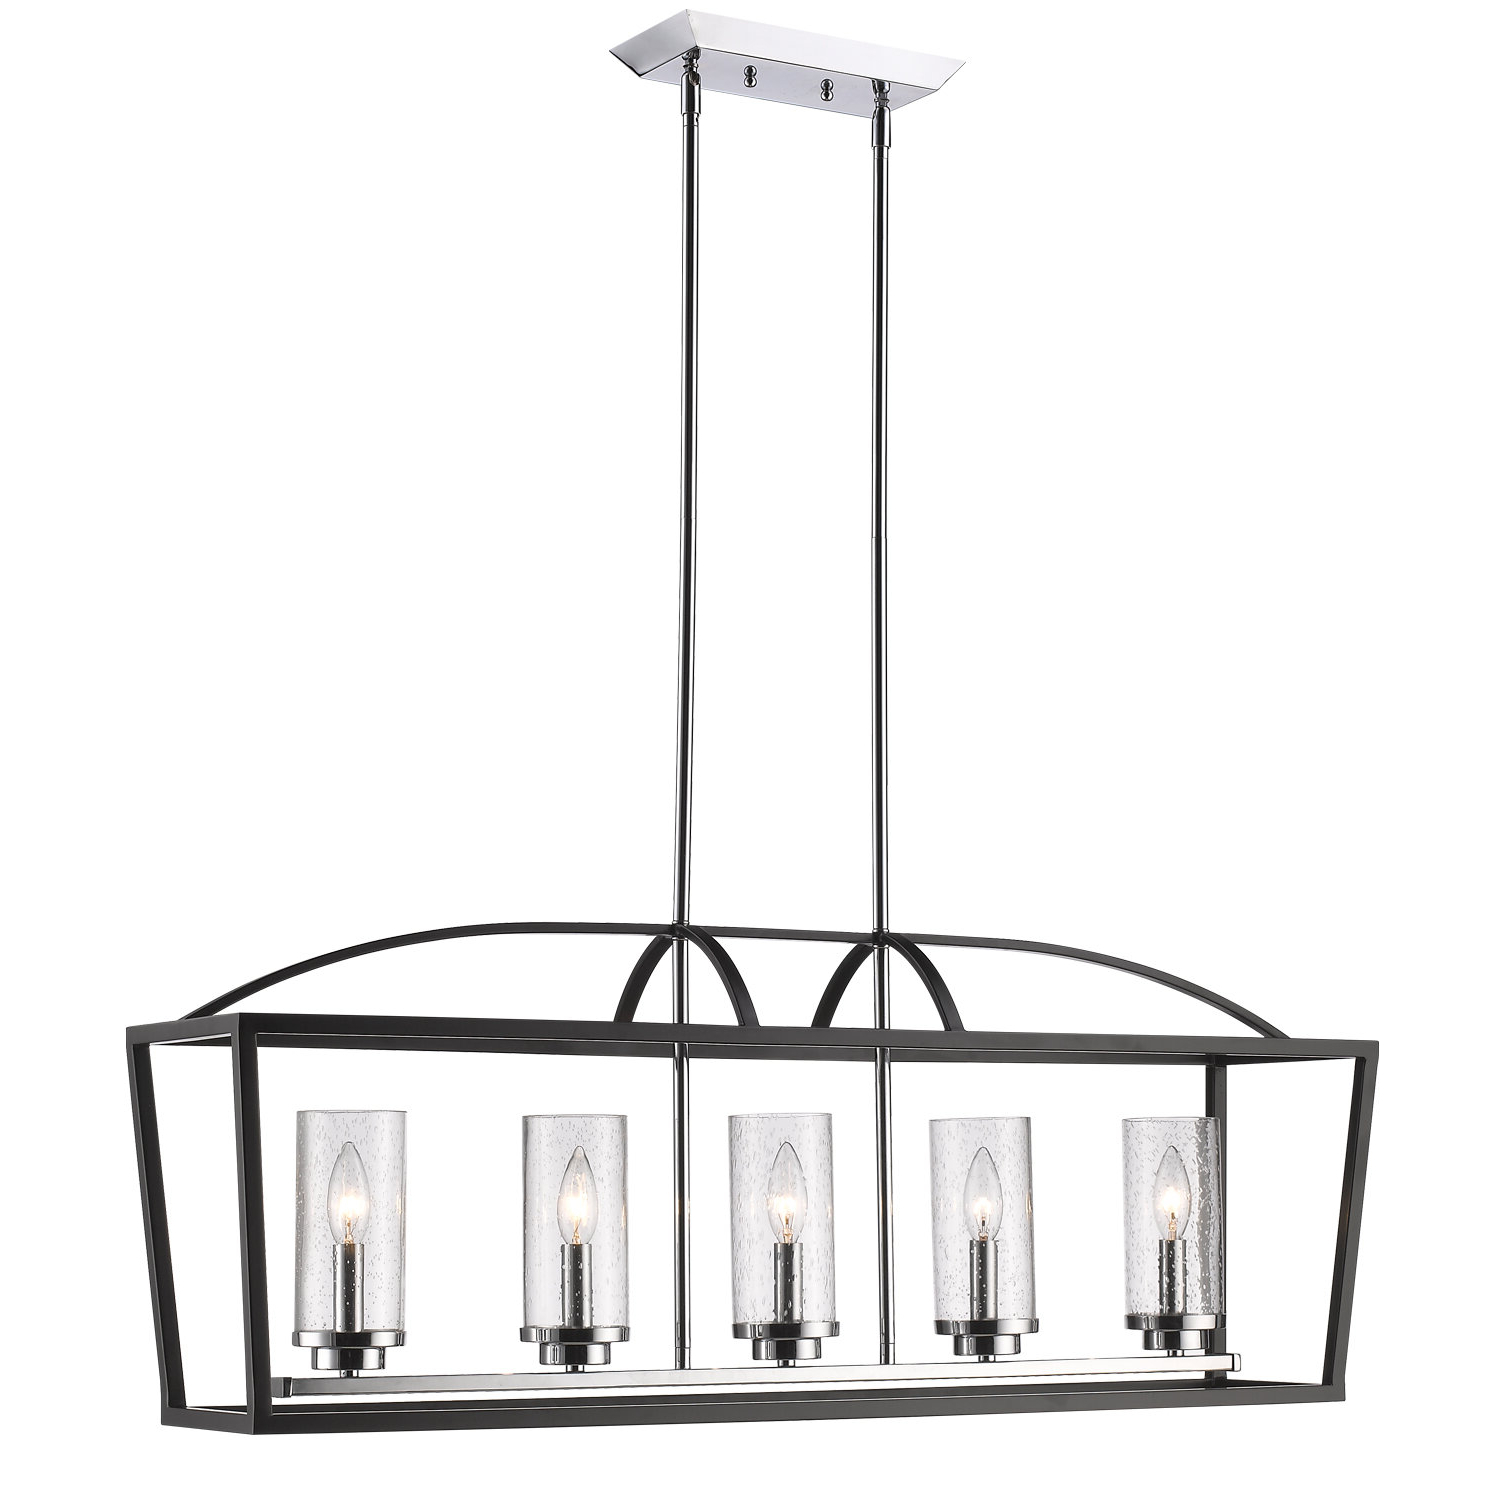 Most Popular Luna 5 Light Kitchen Island Linear Pendant Throughout Cinchring 4 Light Kitchen Island Linear Pendants (Gallery 20 of 20)